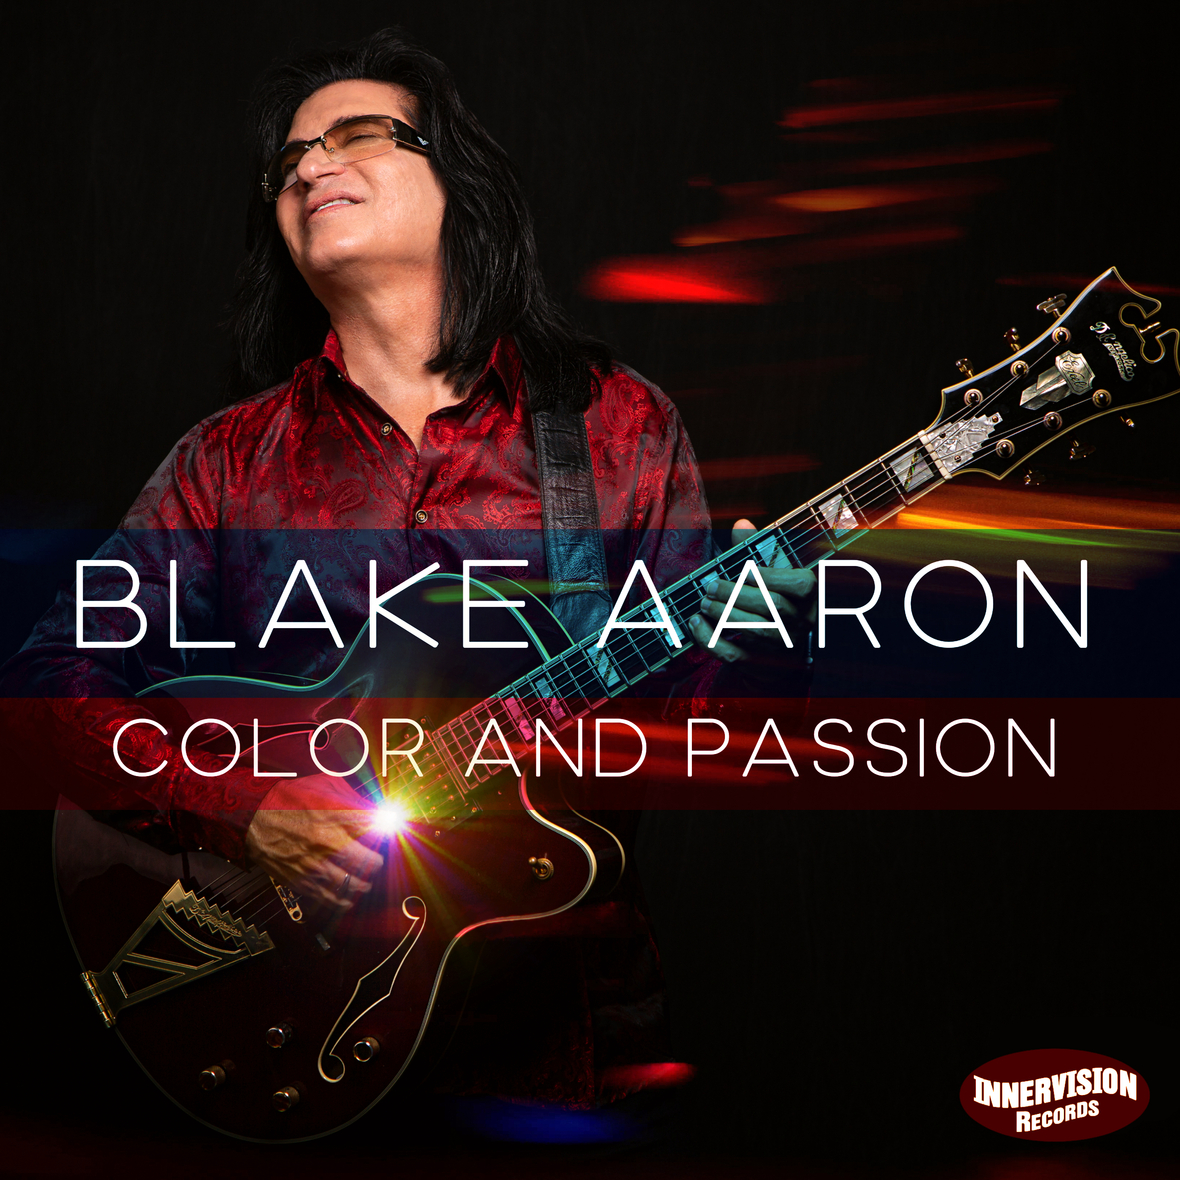 Blake Aaron Color and Passion Cover 070620 FINAL SQ